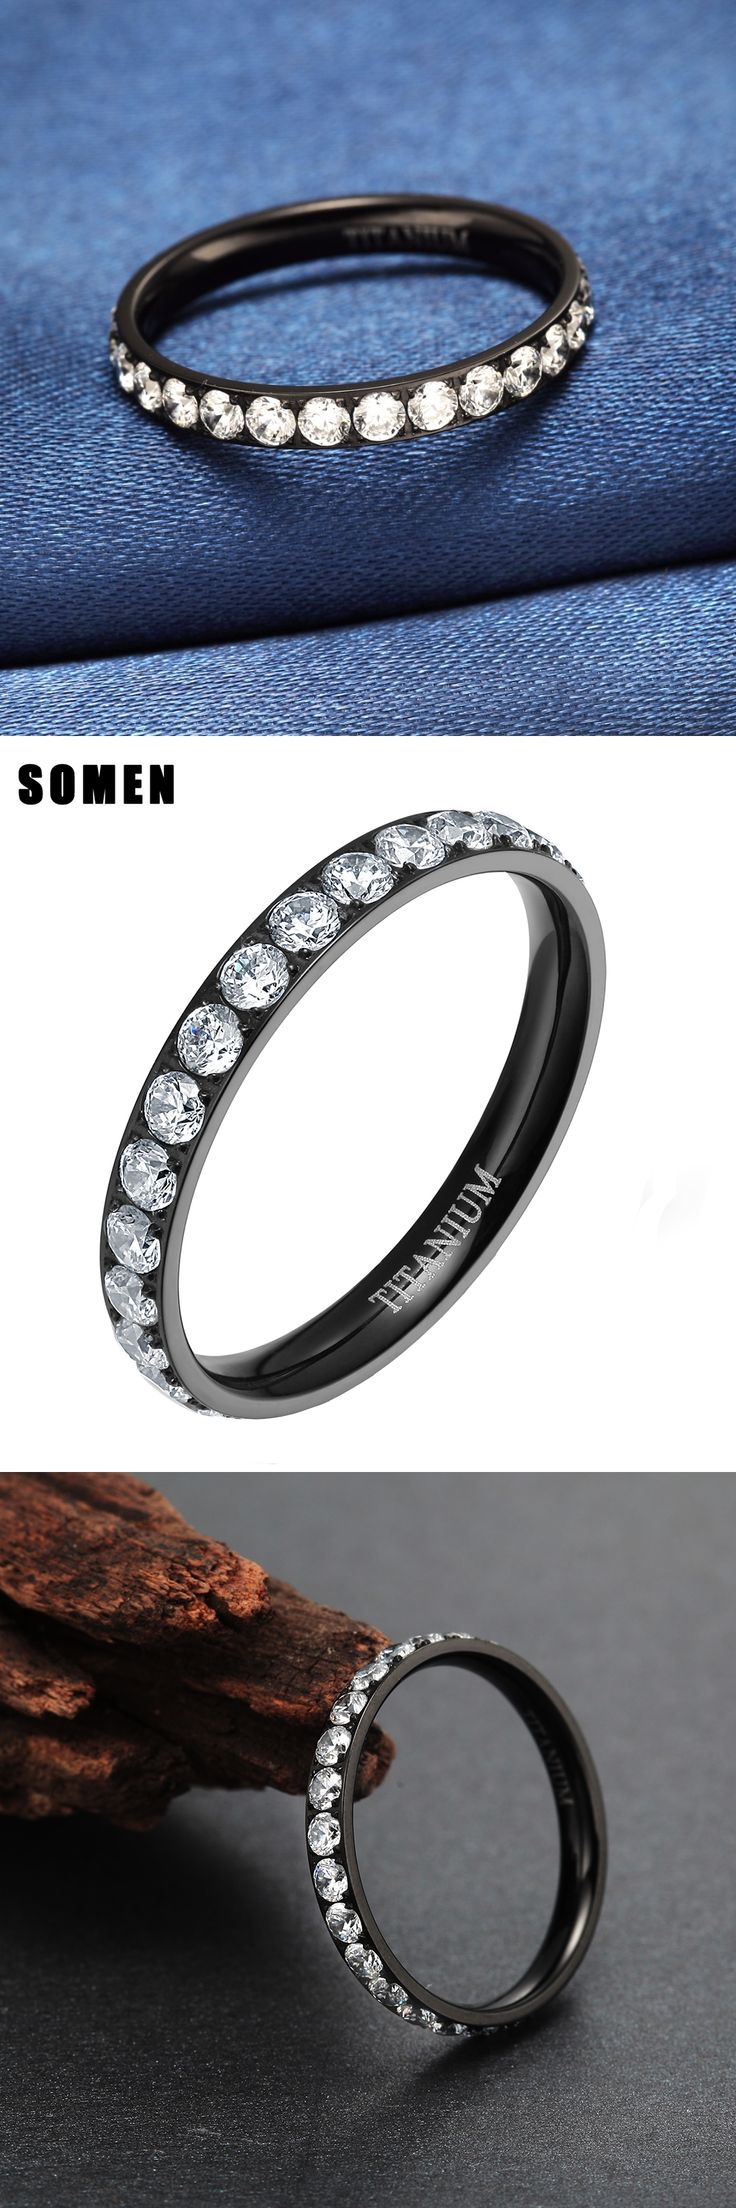 2017 New Arrival 3mm Black Rose Gold Titanium Rings CZ Zircon Women Jewelry Wedding Engagement Band Promise anillos Fast Ship